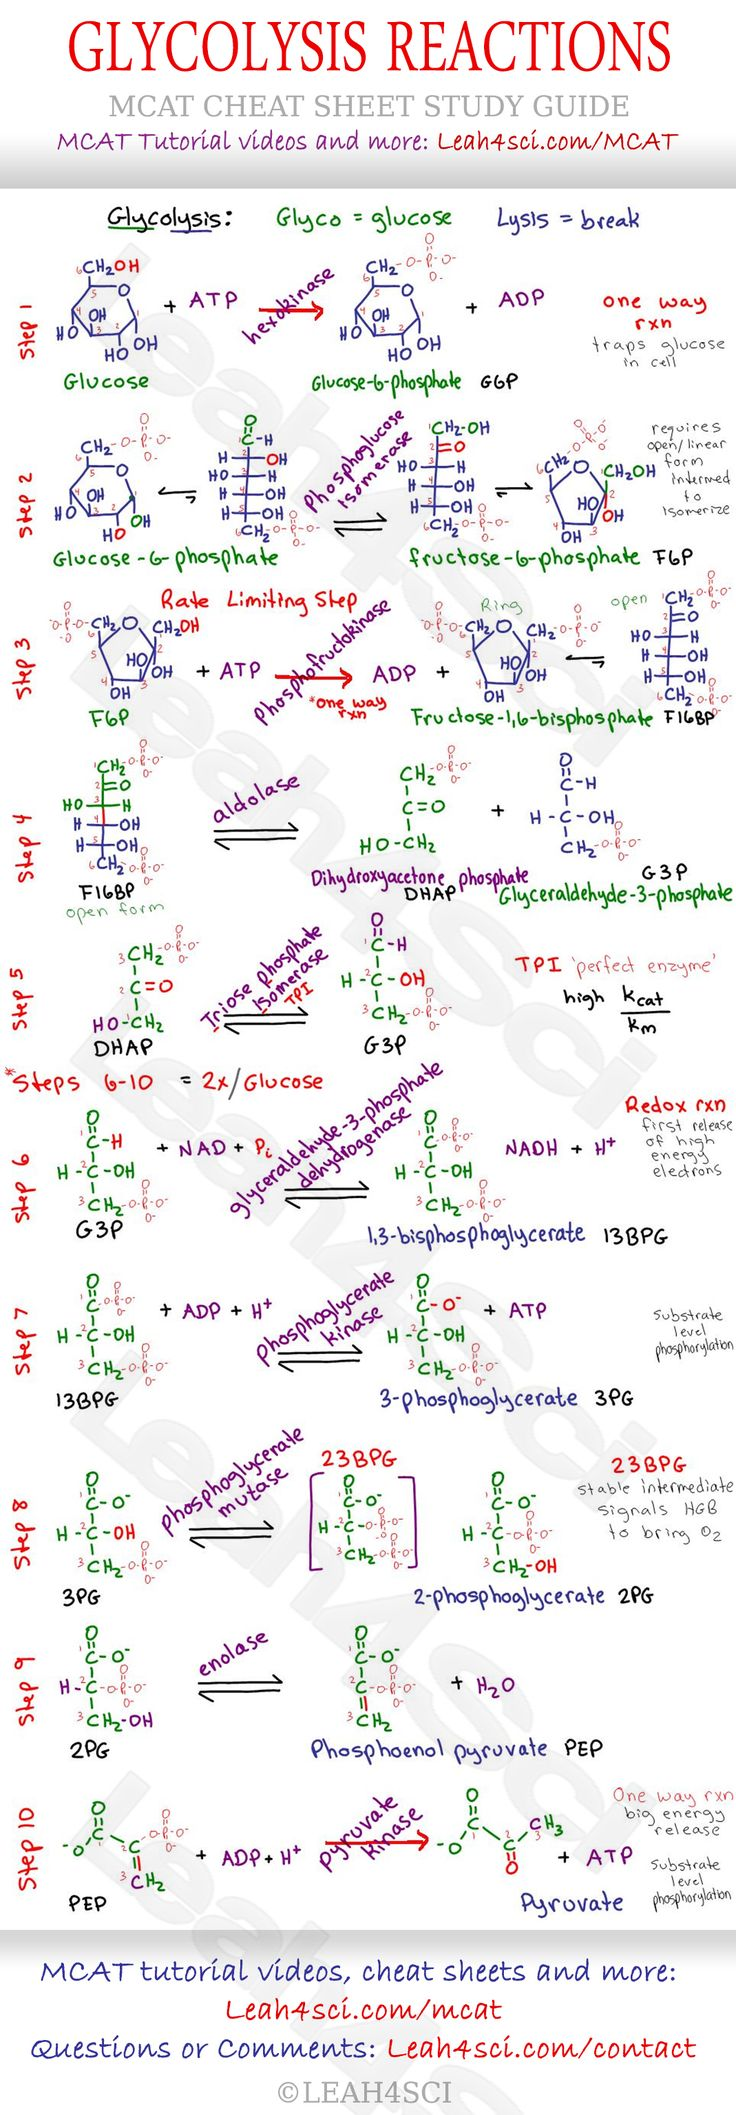 Image from http://leah4sci.com/wp-content/uploads/2015/06/Glycolysis-Reaction-Steps-MCAT-Cheat-Sheet-Study-Guide-Leah4sci.jpg.